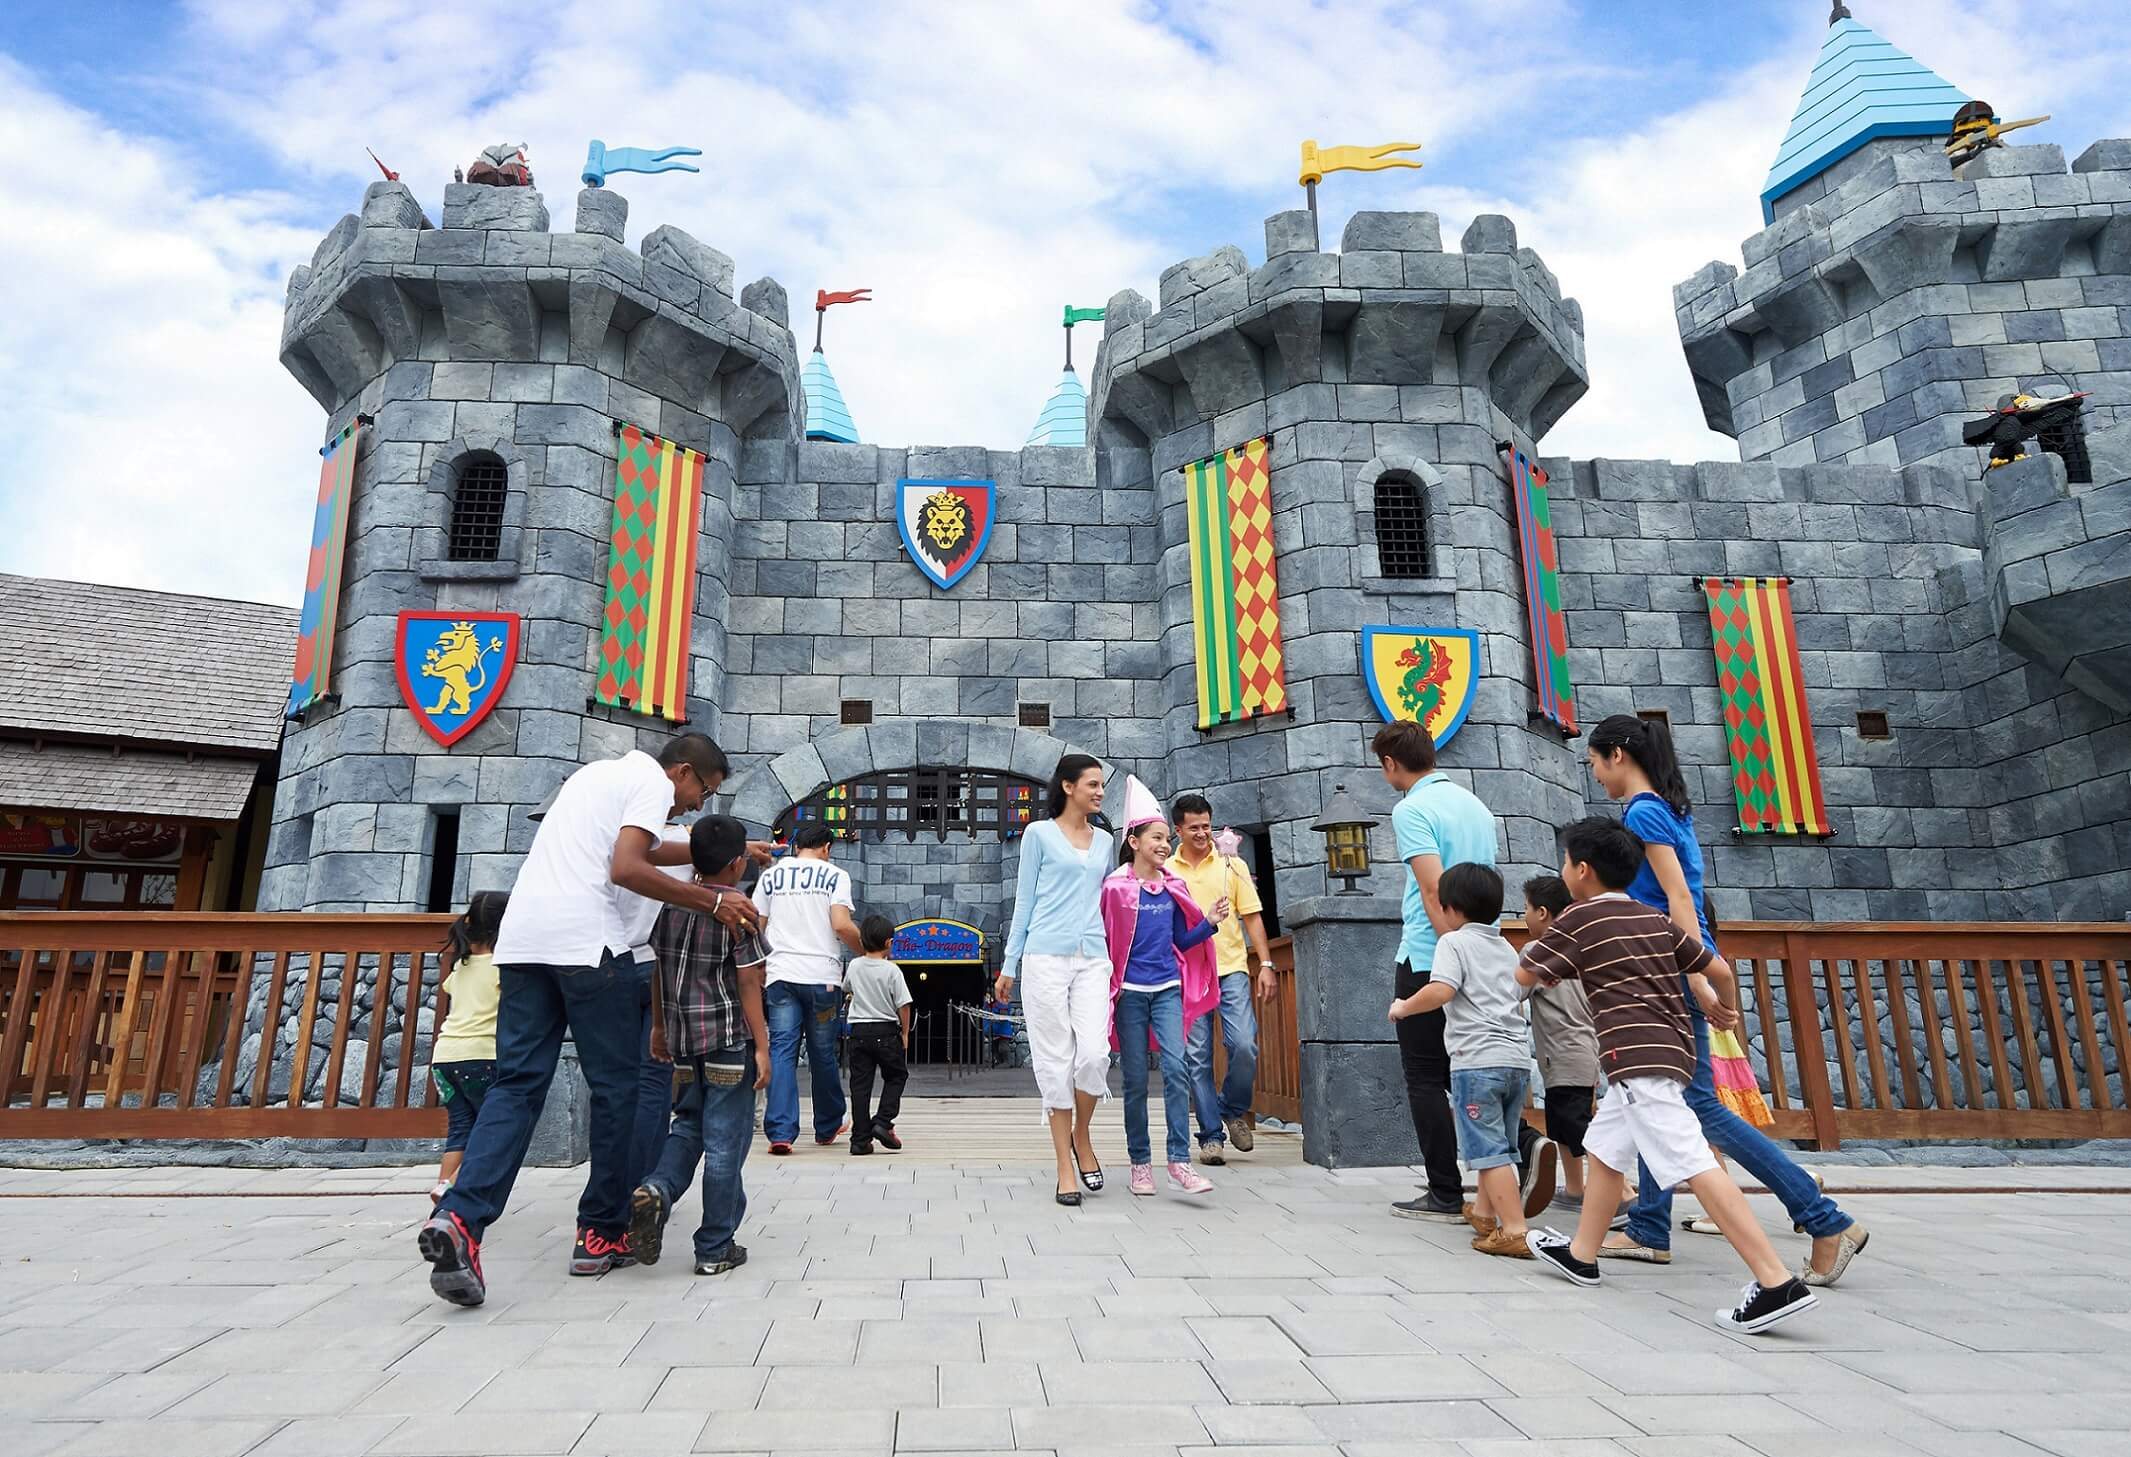 LEGO Kingdom calls all knights and princesses to explore the Knights Kingdom and soar though the castle and over the moat